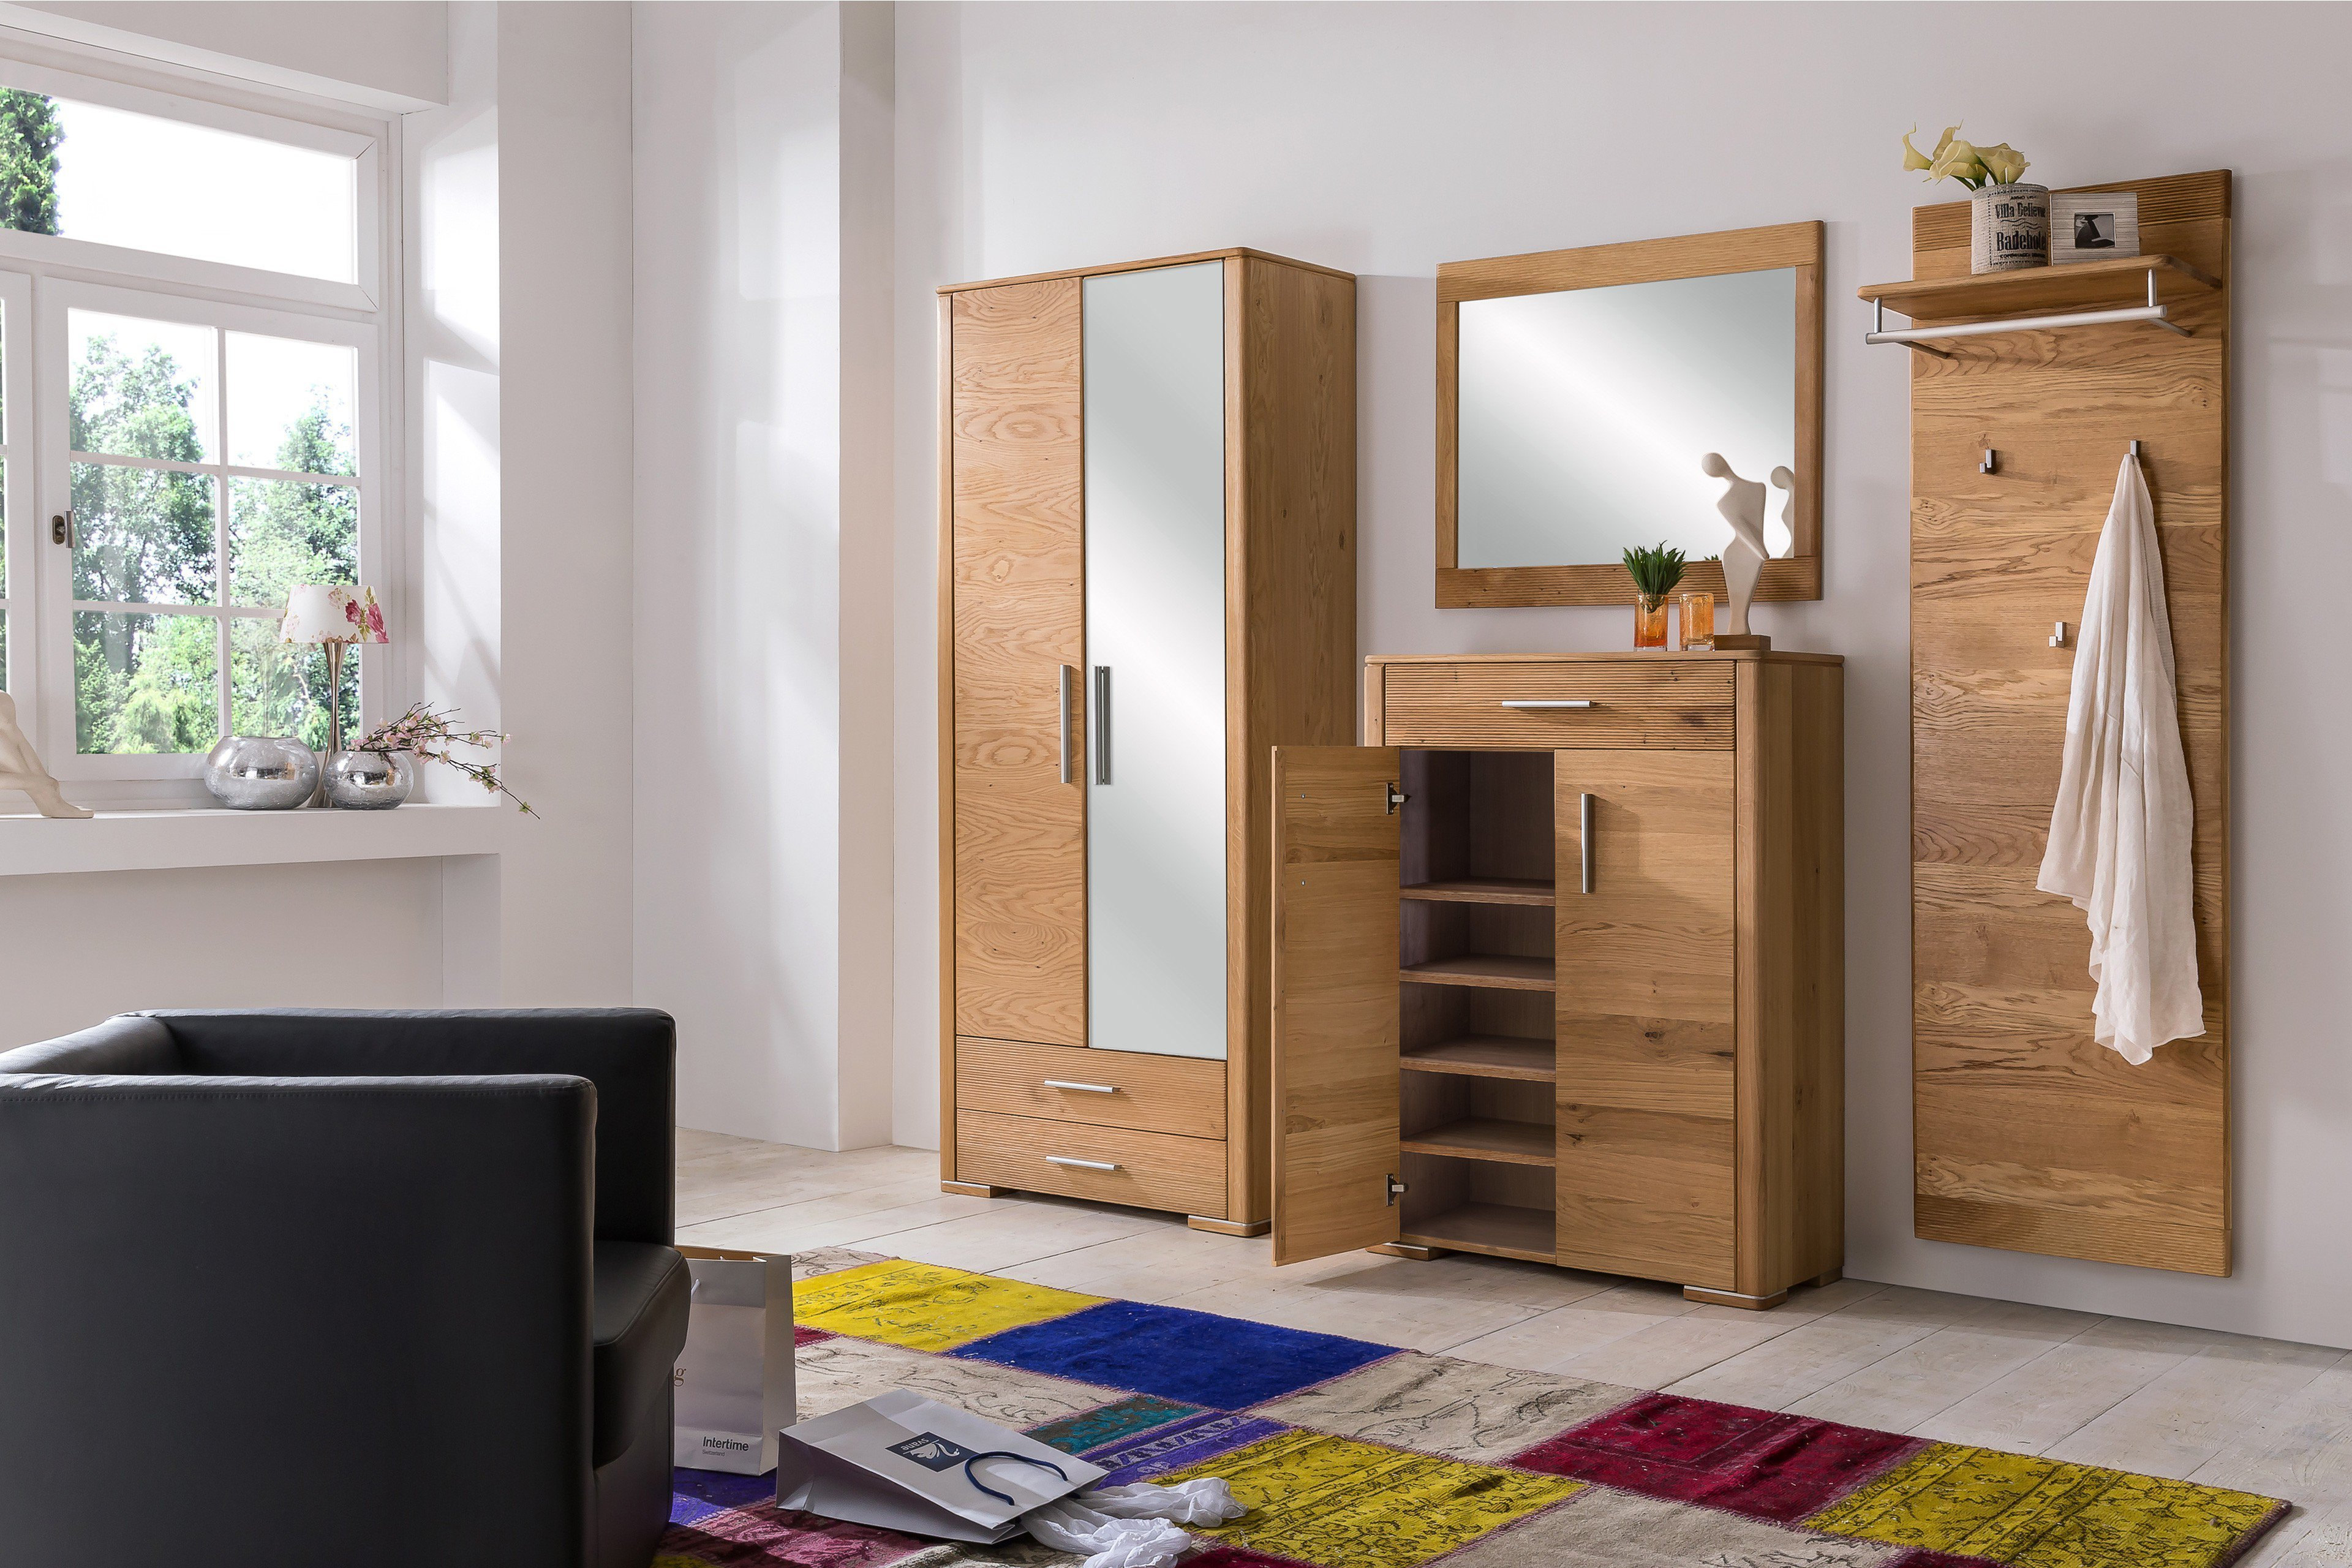 bfk m bel bogota garderobe in wildeiche m bel letz ihr. Black Bedroom Furniture Sets. Home Design Ideas